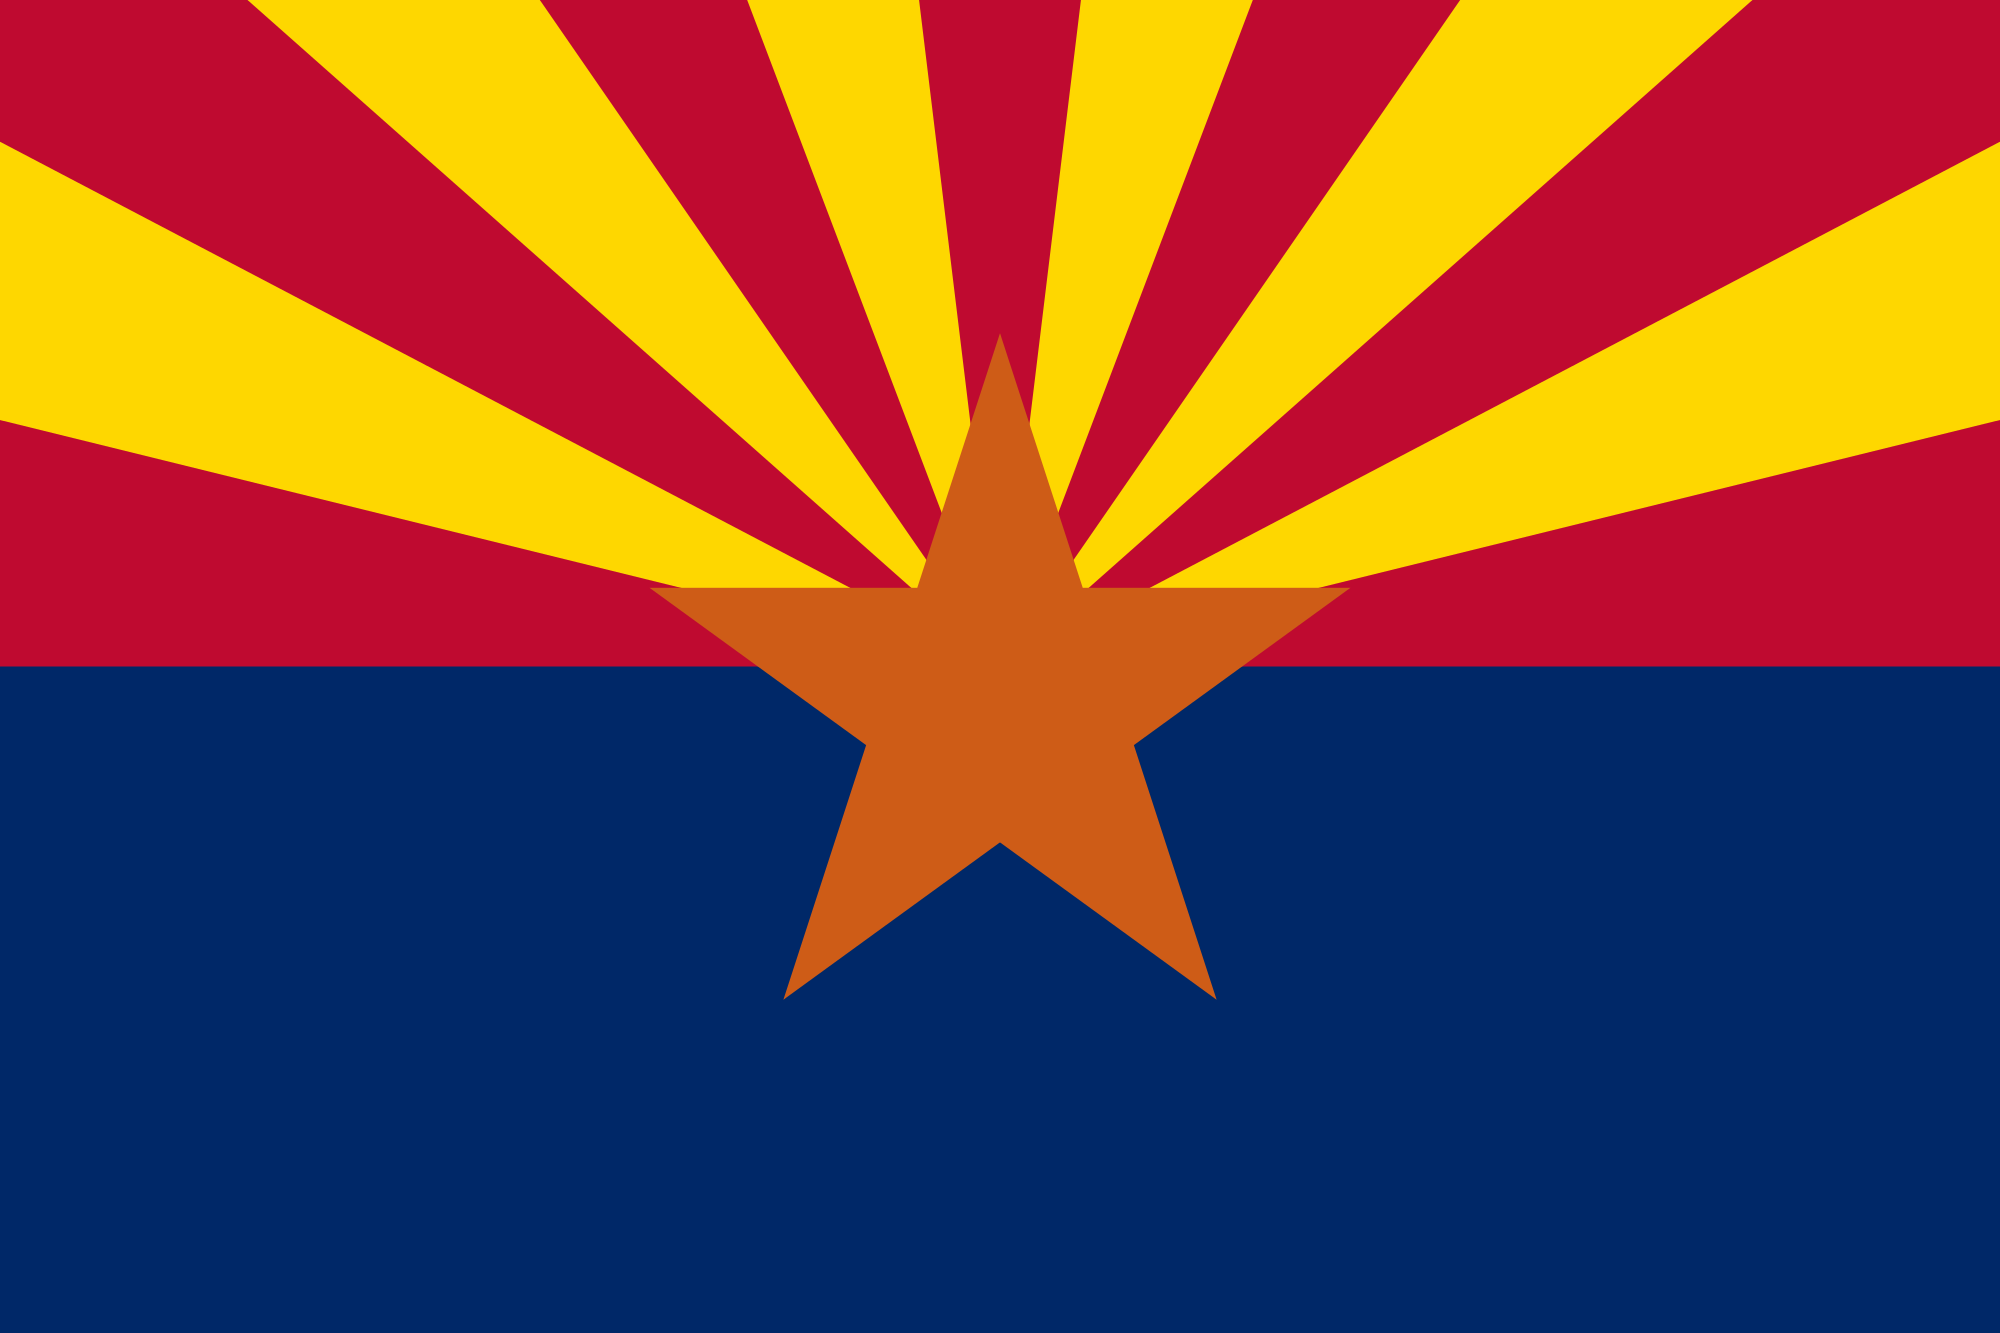 Arizona State Holidays Information from Holidays and Observances